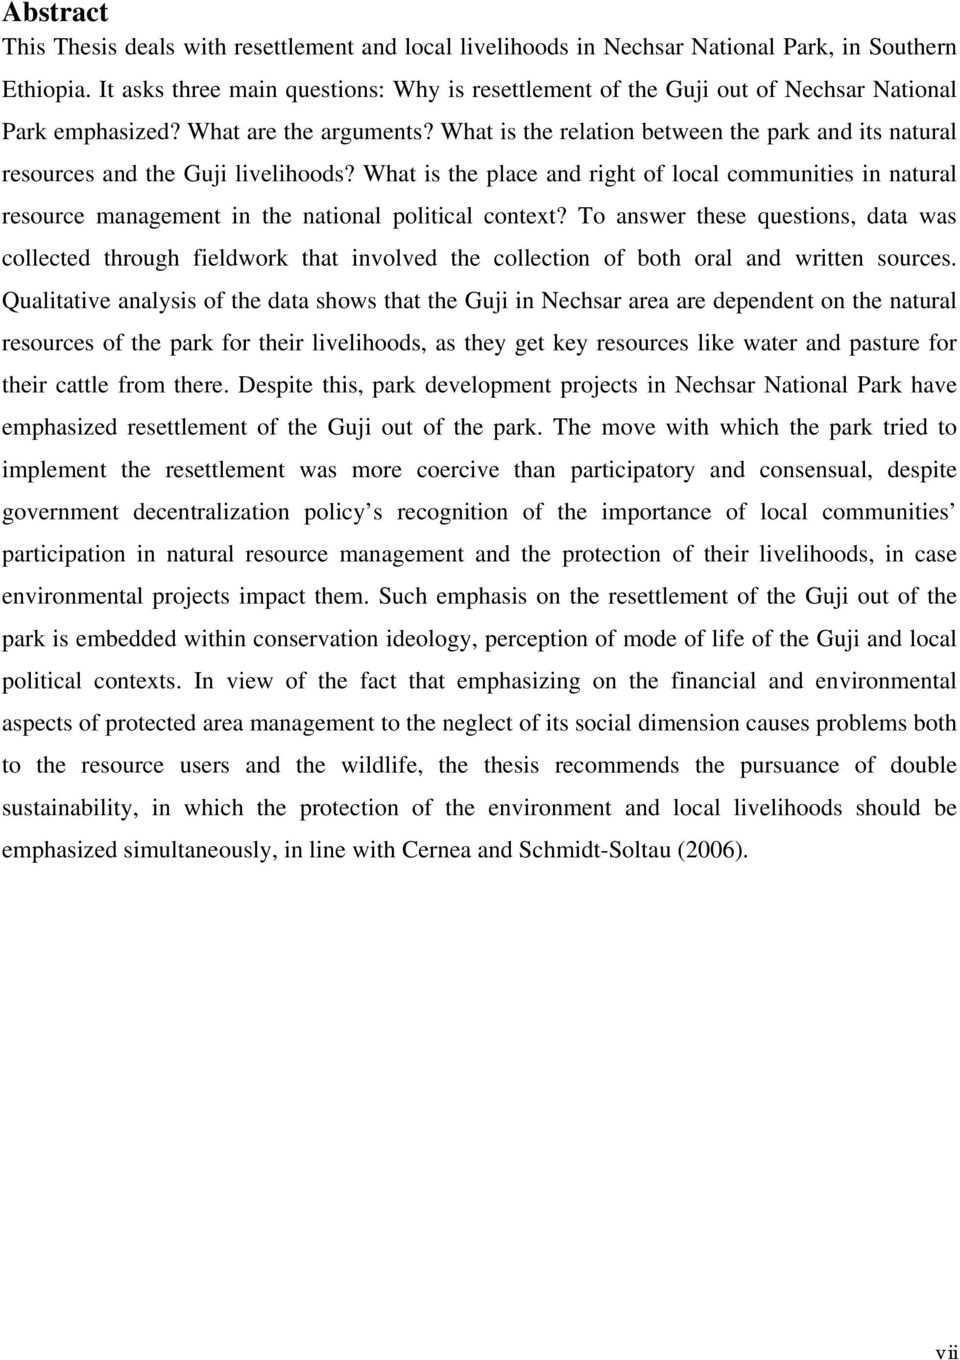 What is the relation between the park and its natural resources and the Guji livelihoods?